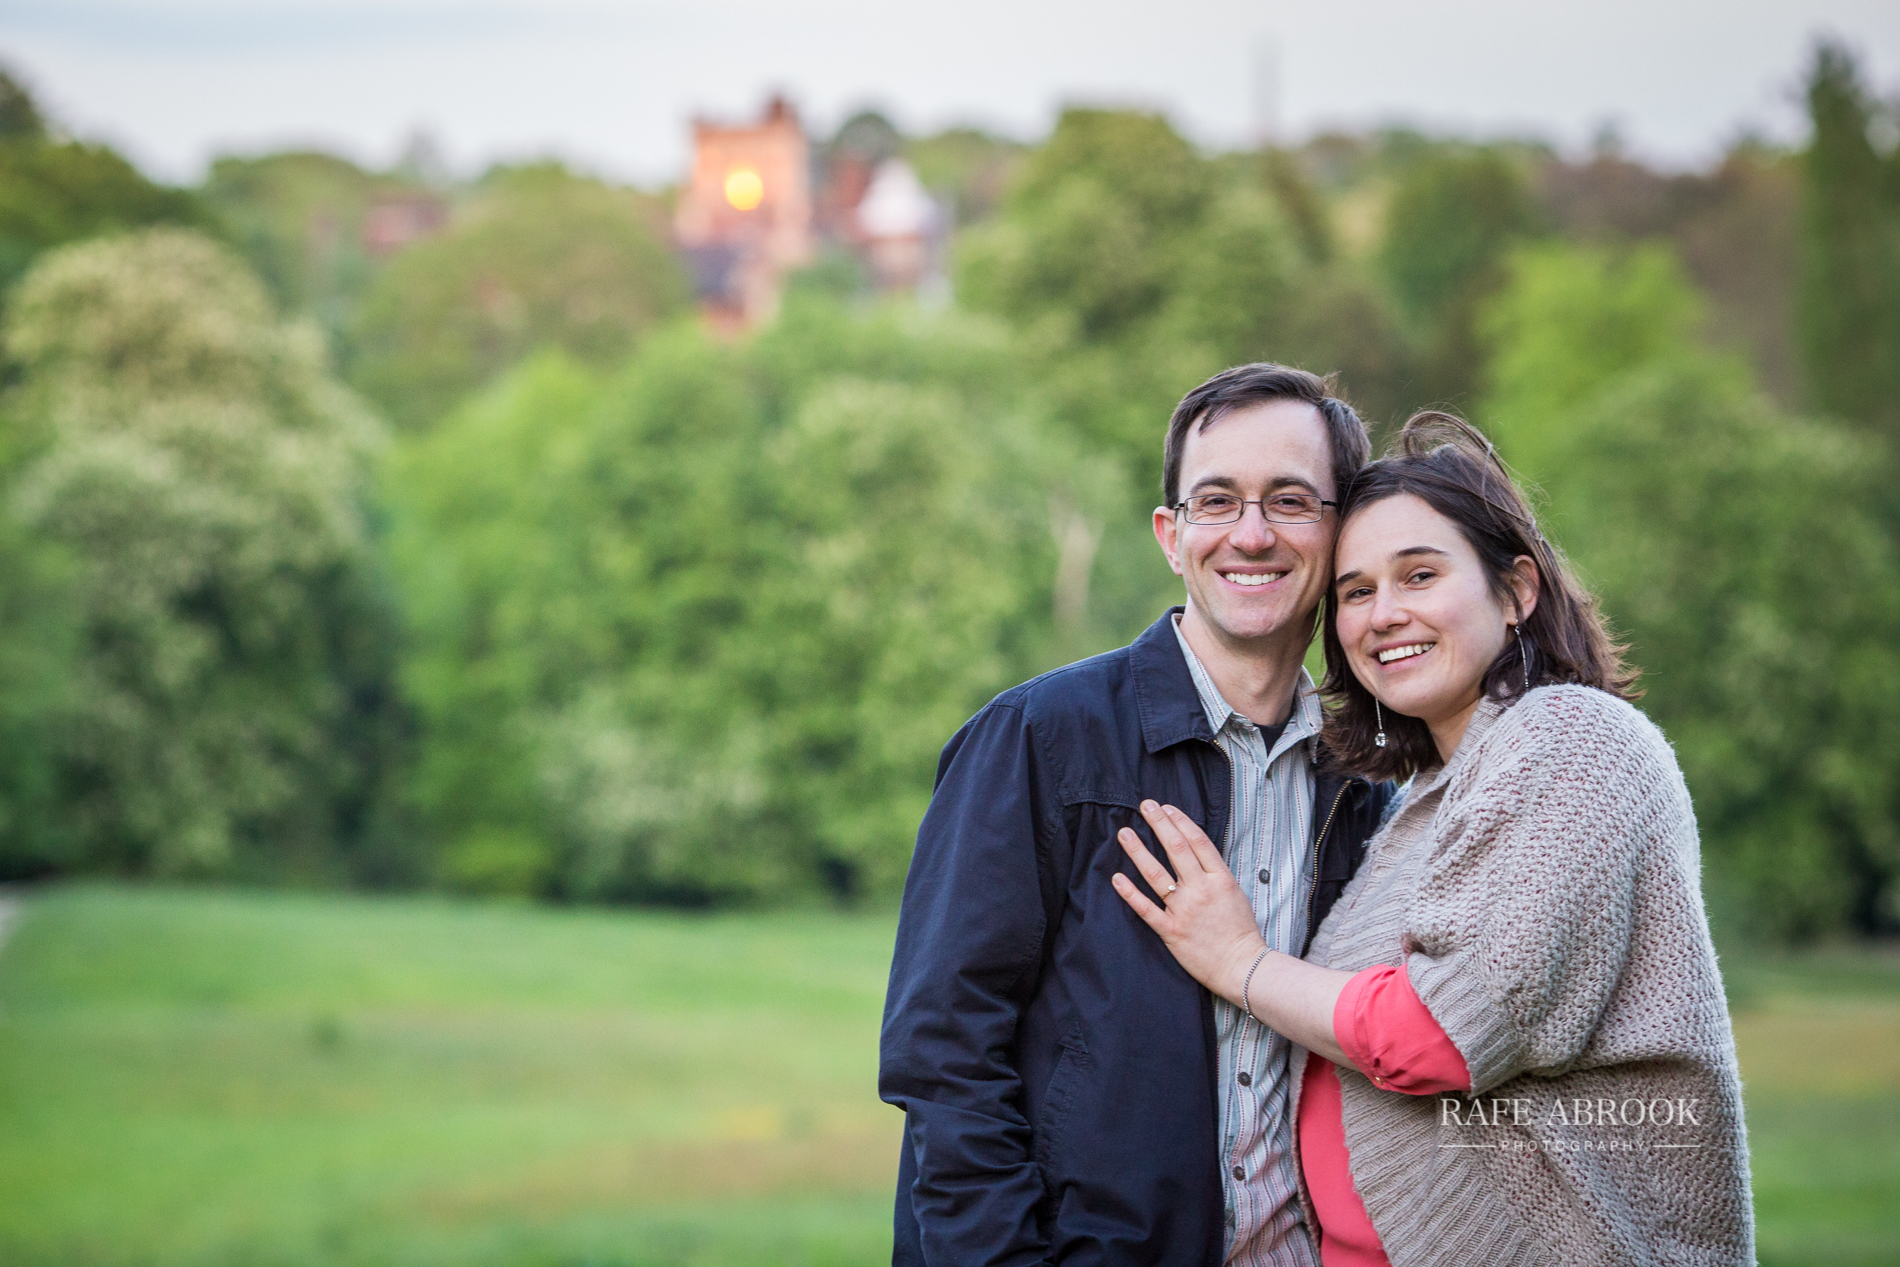 david & hannah engagement shoot hampstead heath london-2039.jpg